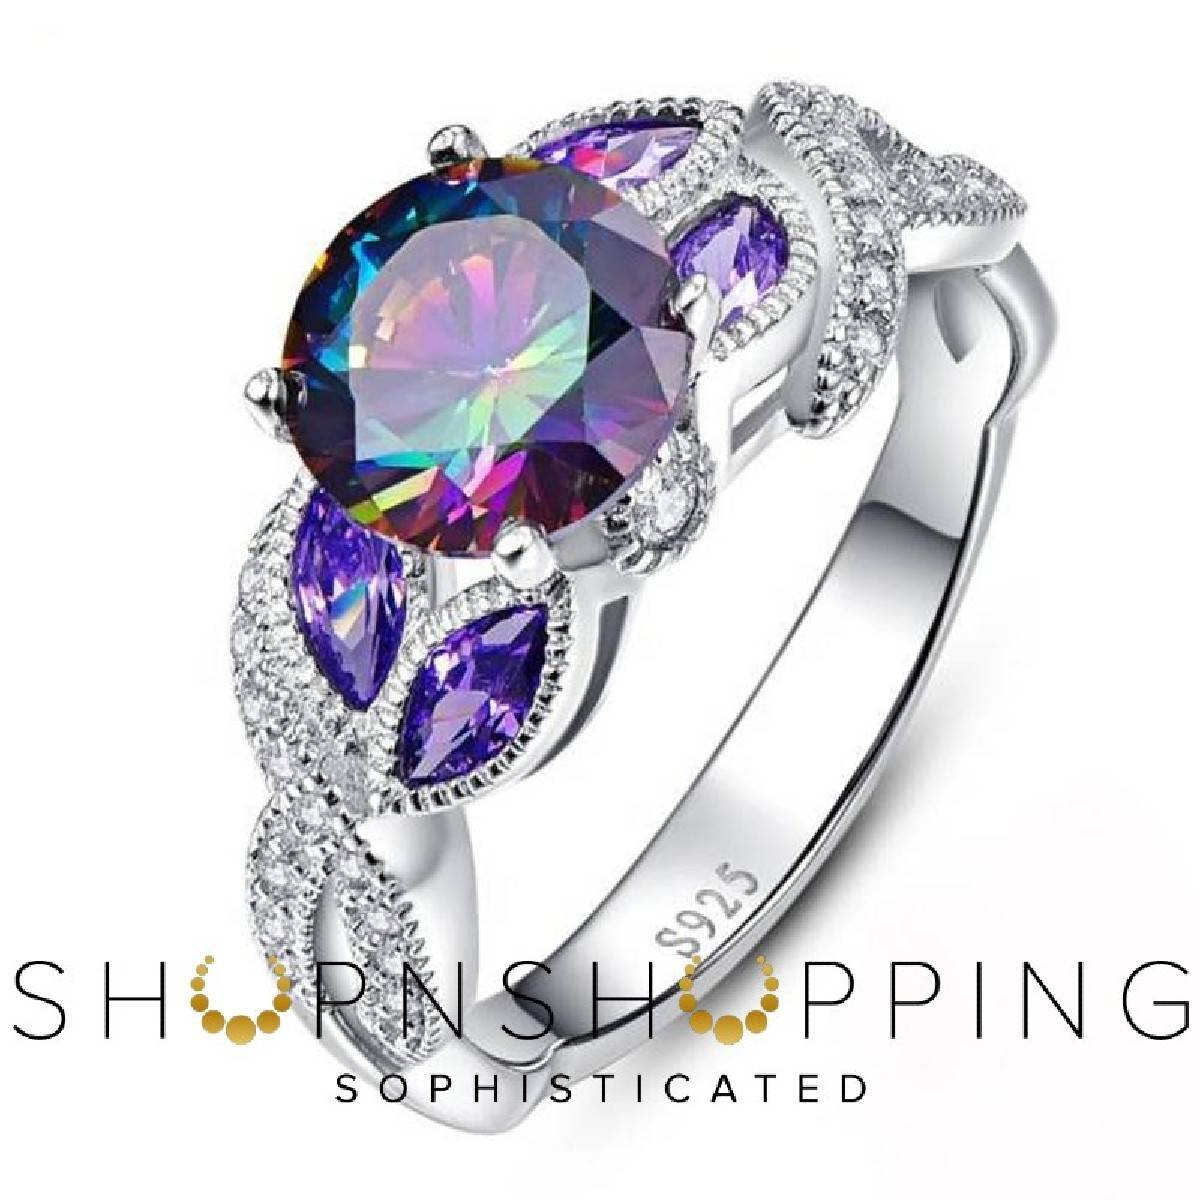 Imported High Quality Engagement Silver Plated Colorful Water Drops Full Rhinestone Zircon Rings for Girls & Women - HS-CS-B2388